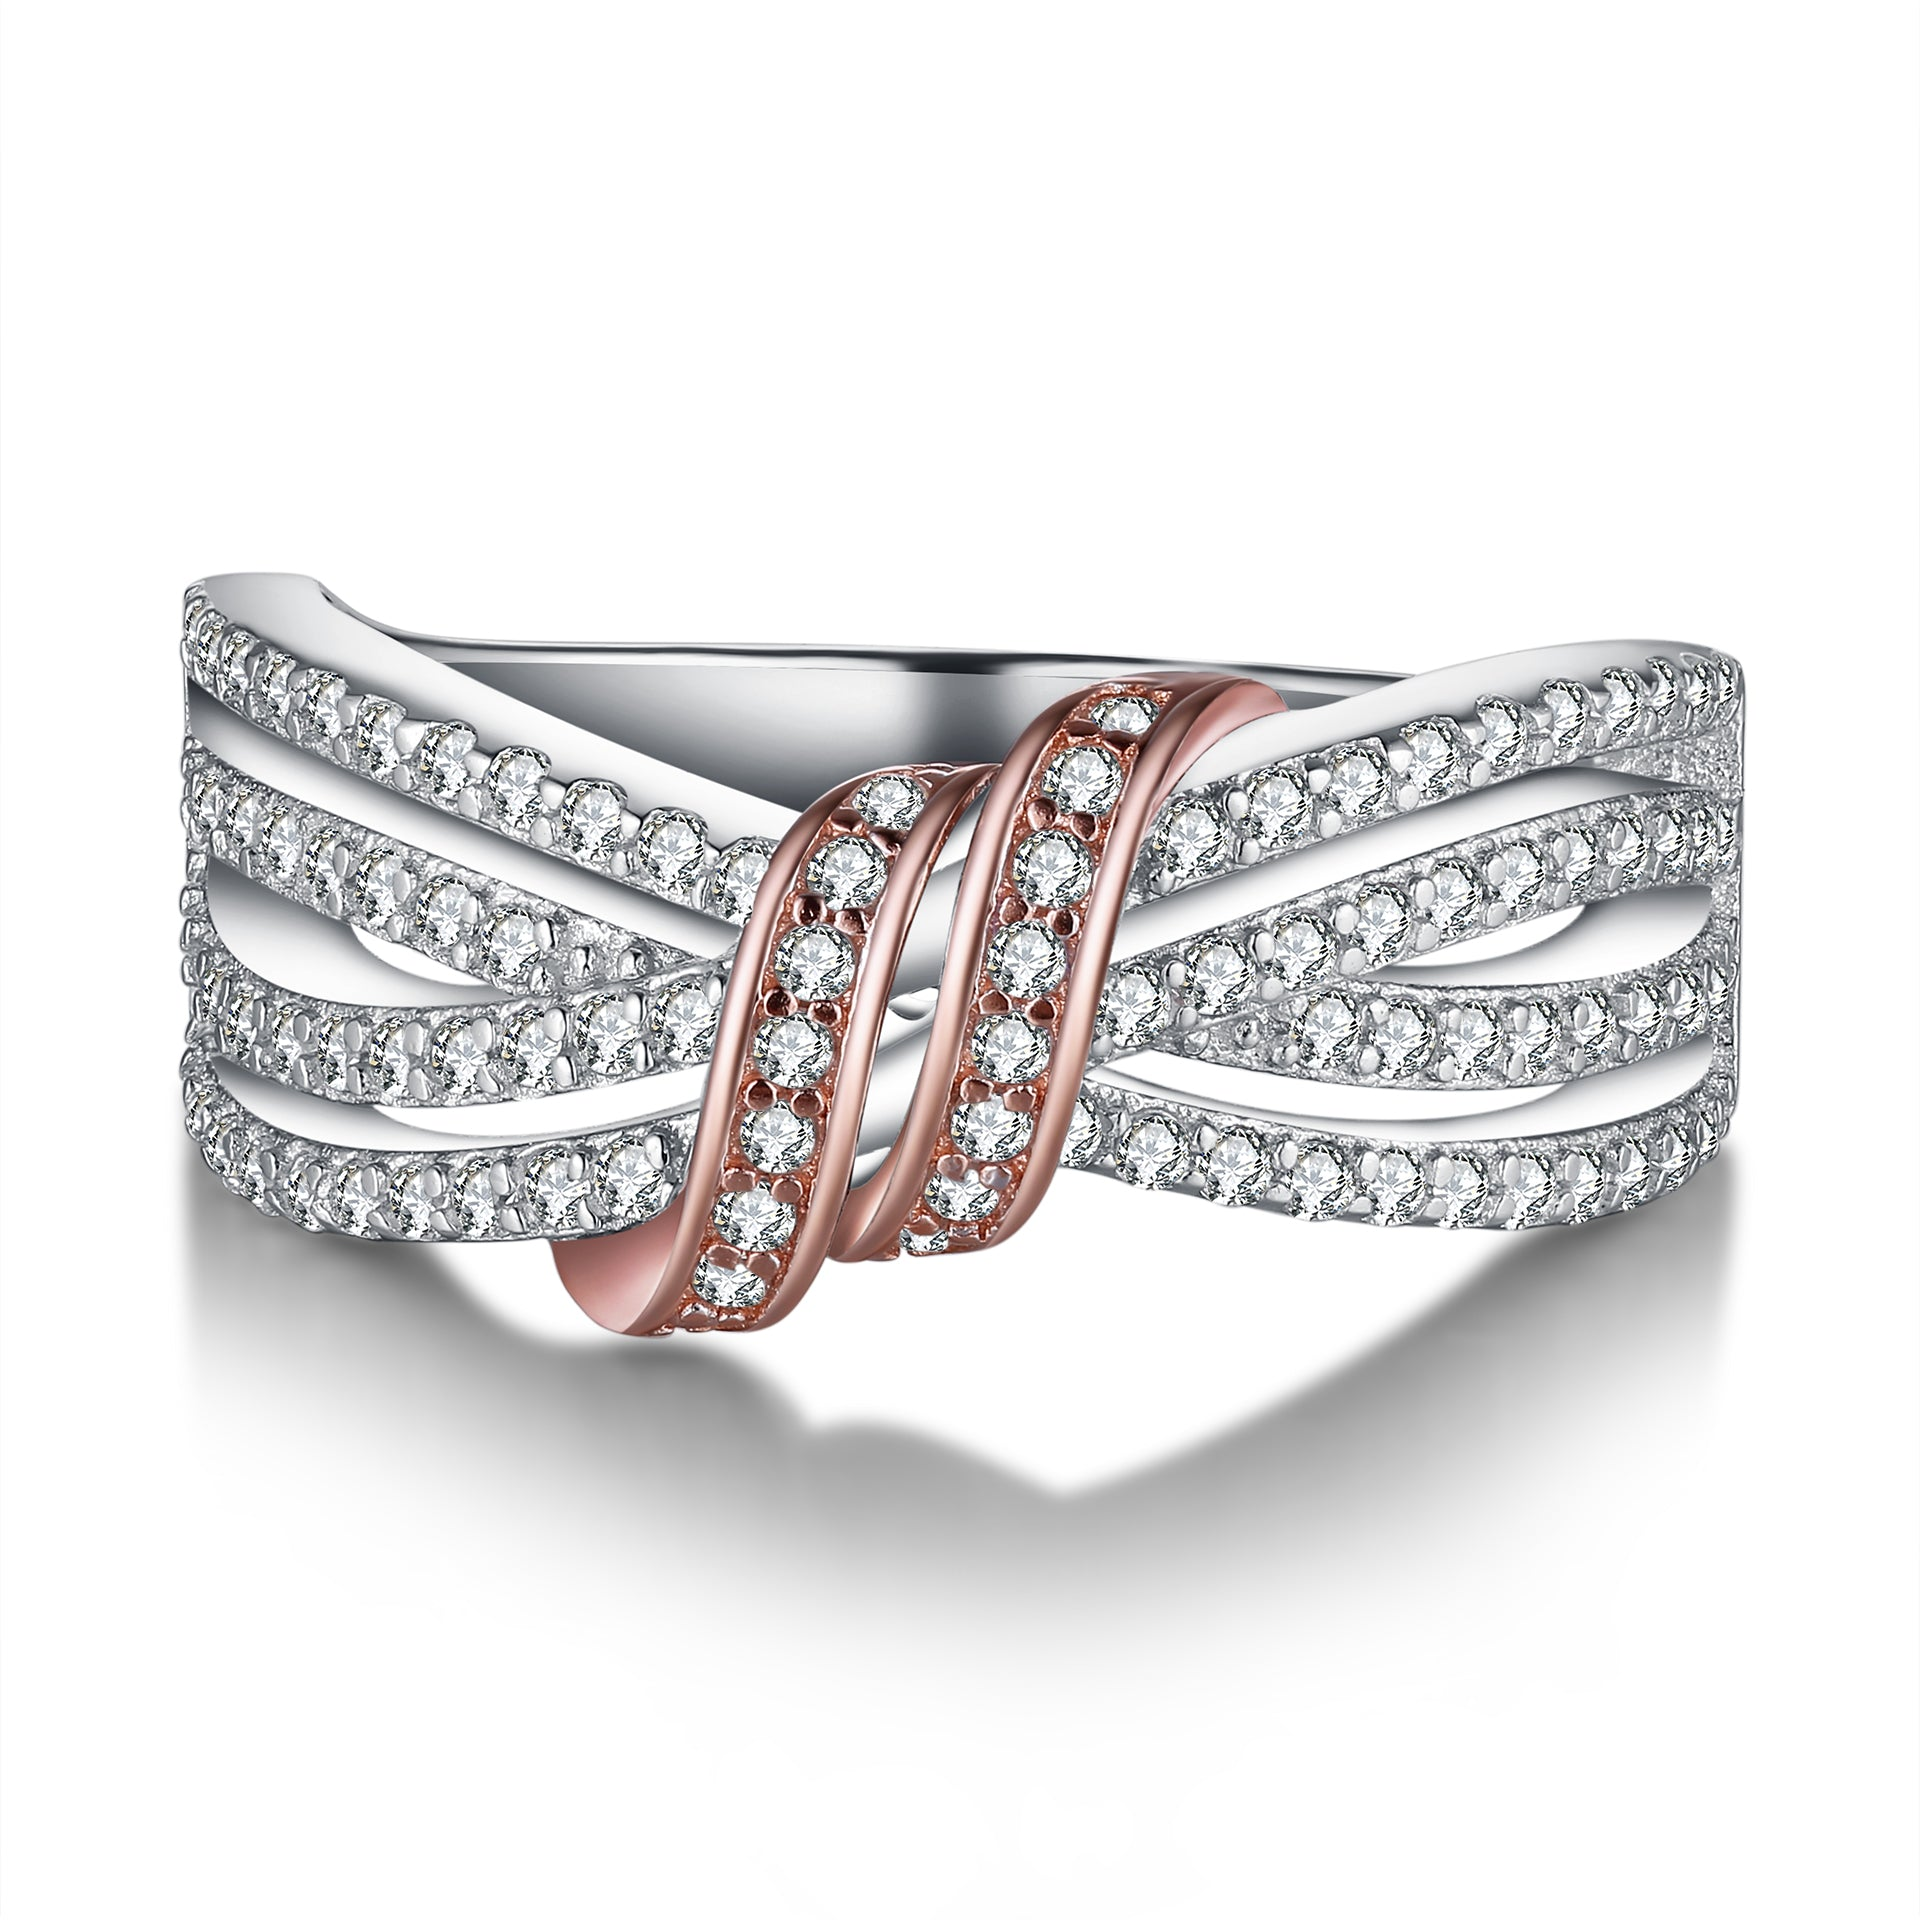 Fashion Simple Wedding Ring Design 925 Sterling Silver Ring for Women